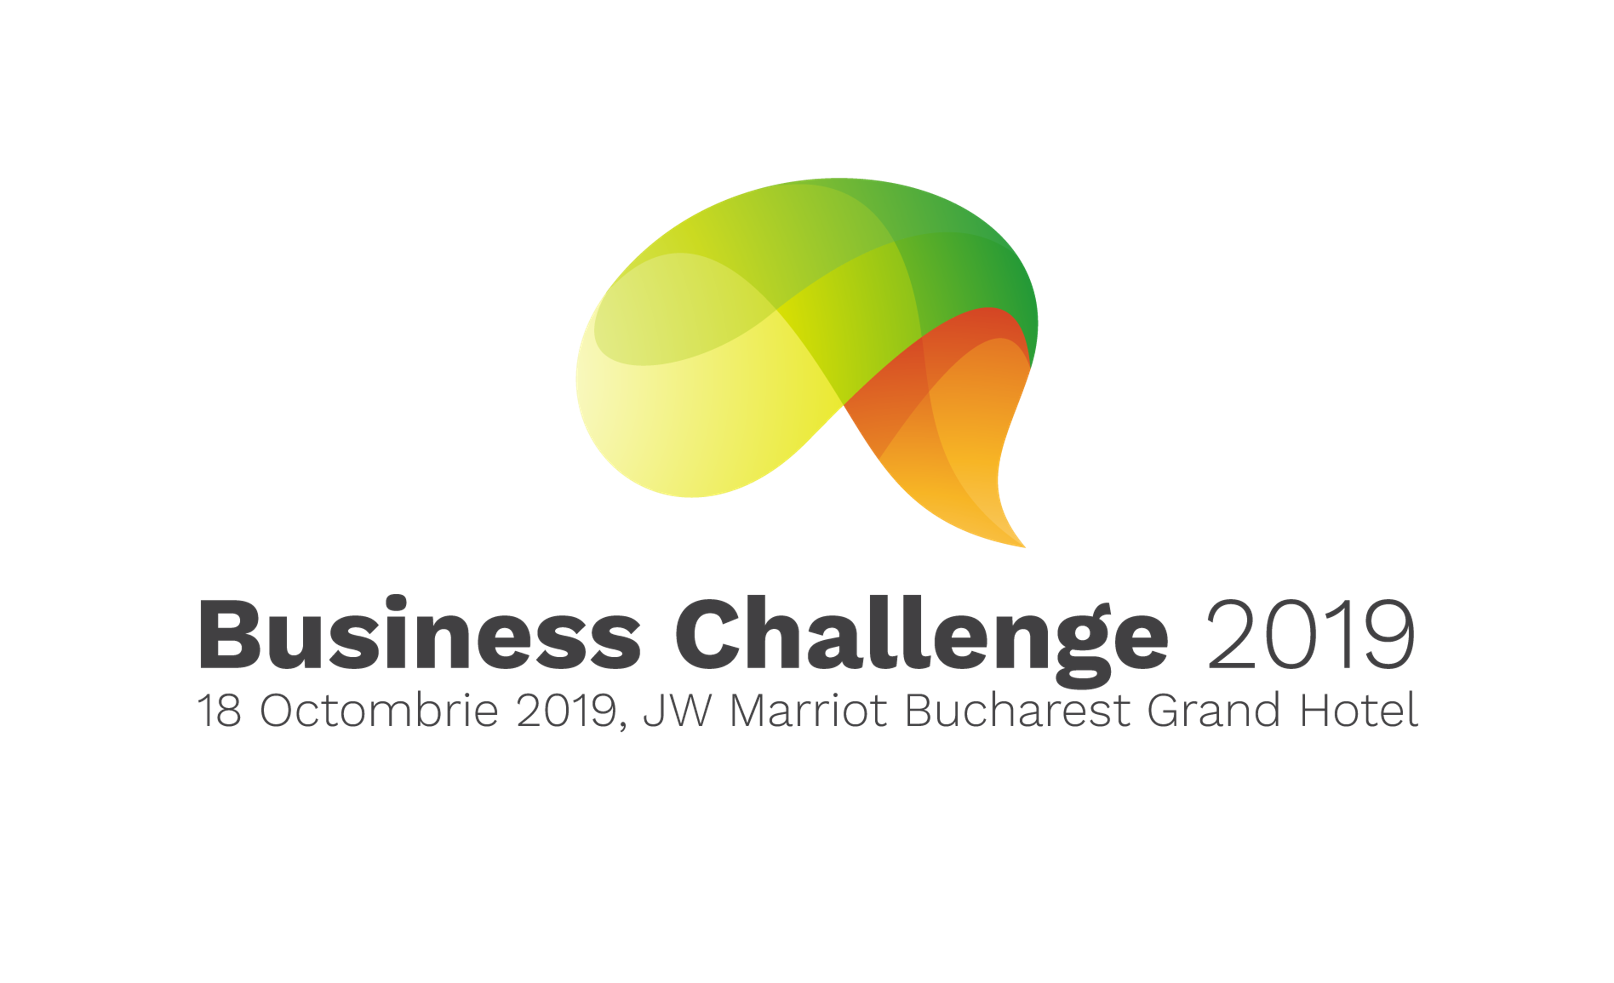 """BUSINESS CHALLENGE 2019, Bucuresti: """"It's all about Success and Failure, but most of all it's about not giving up!"""